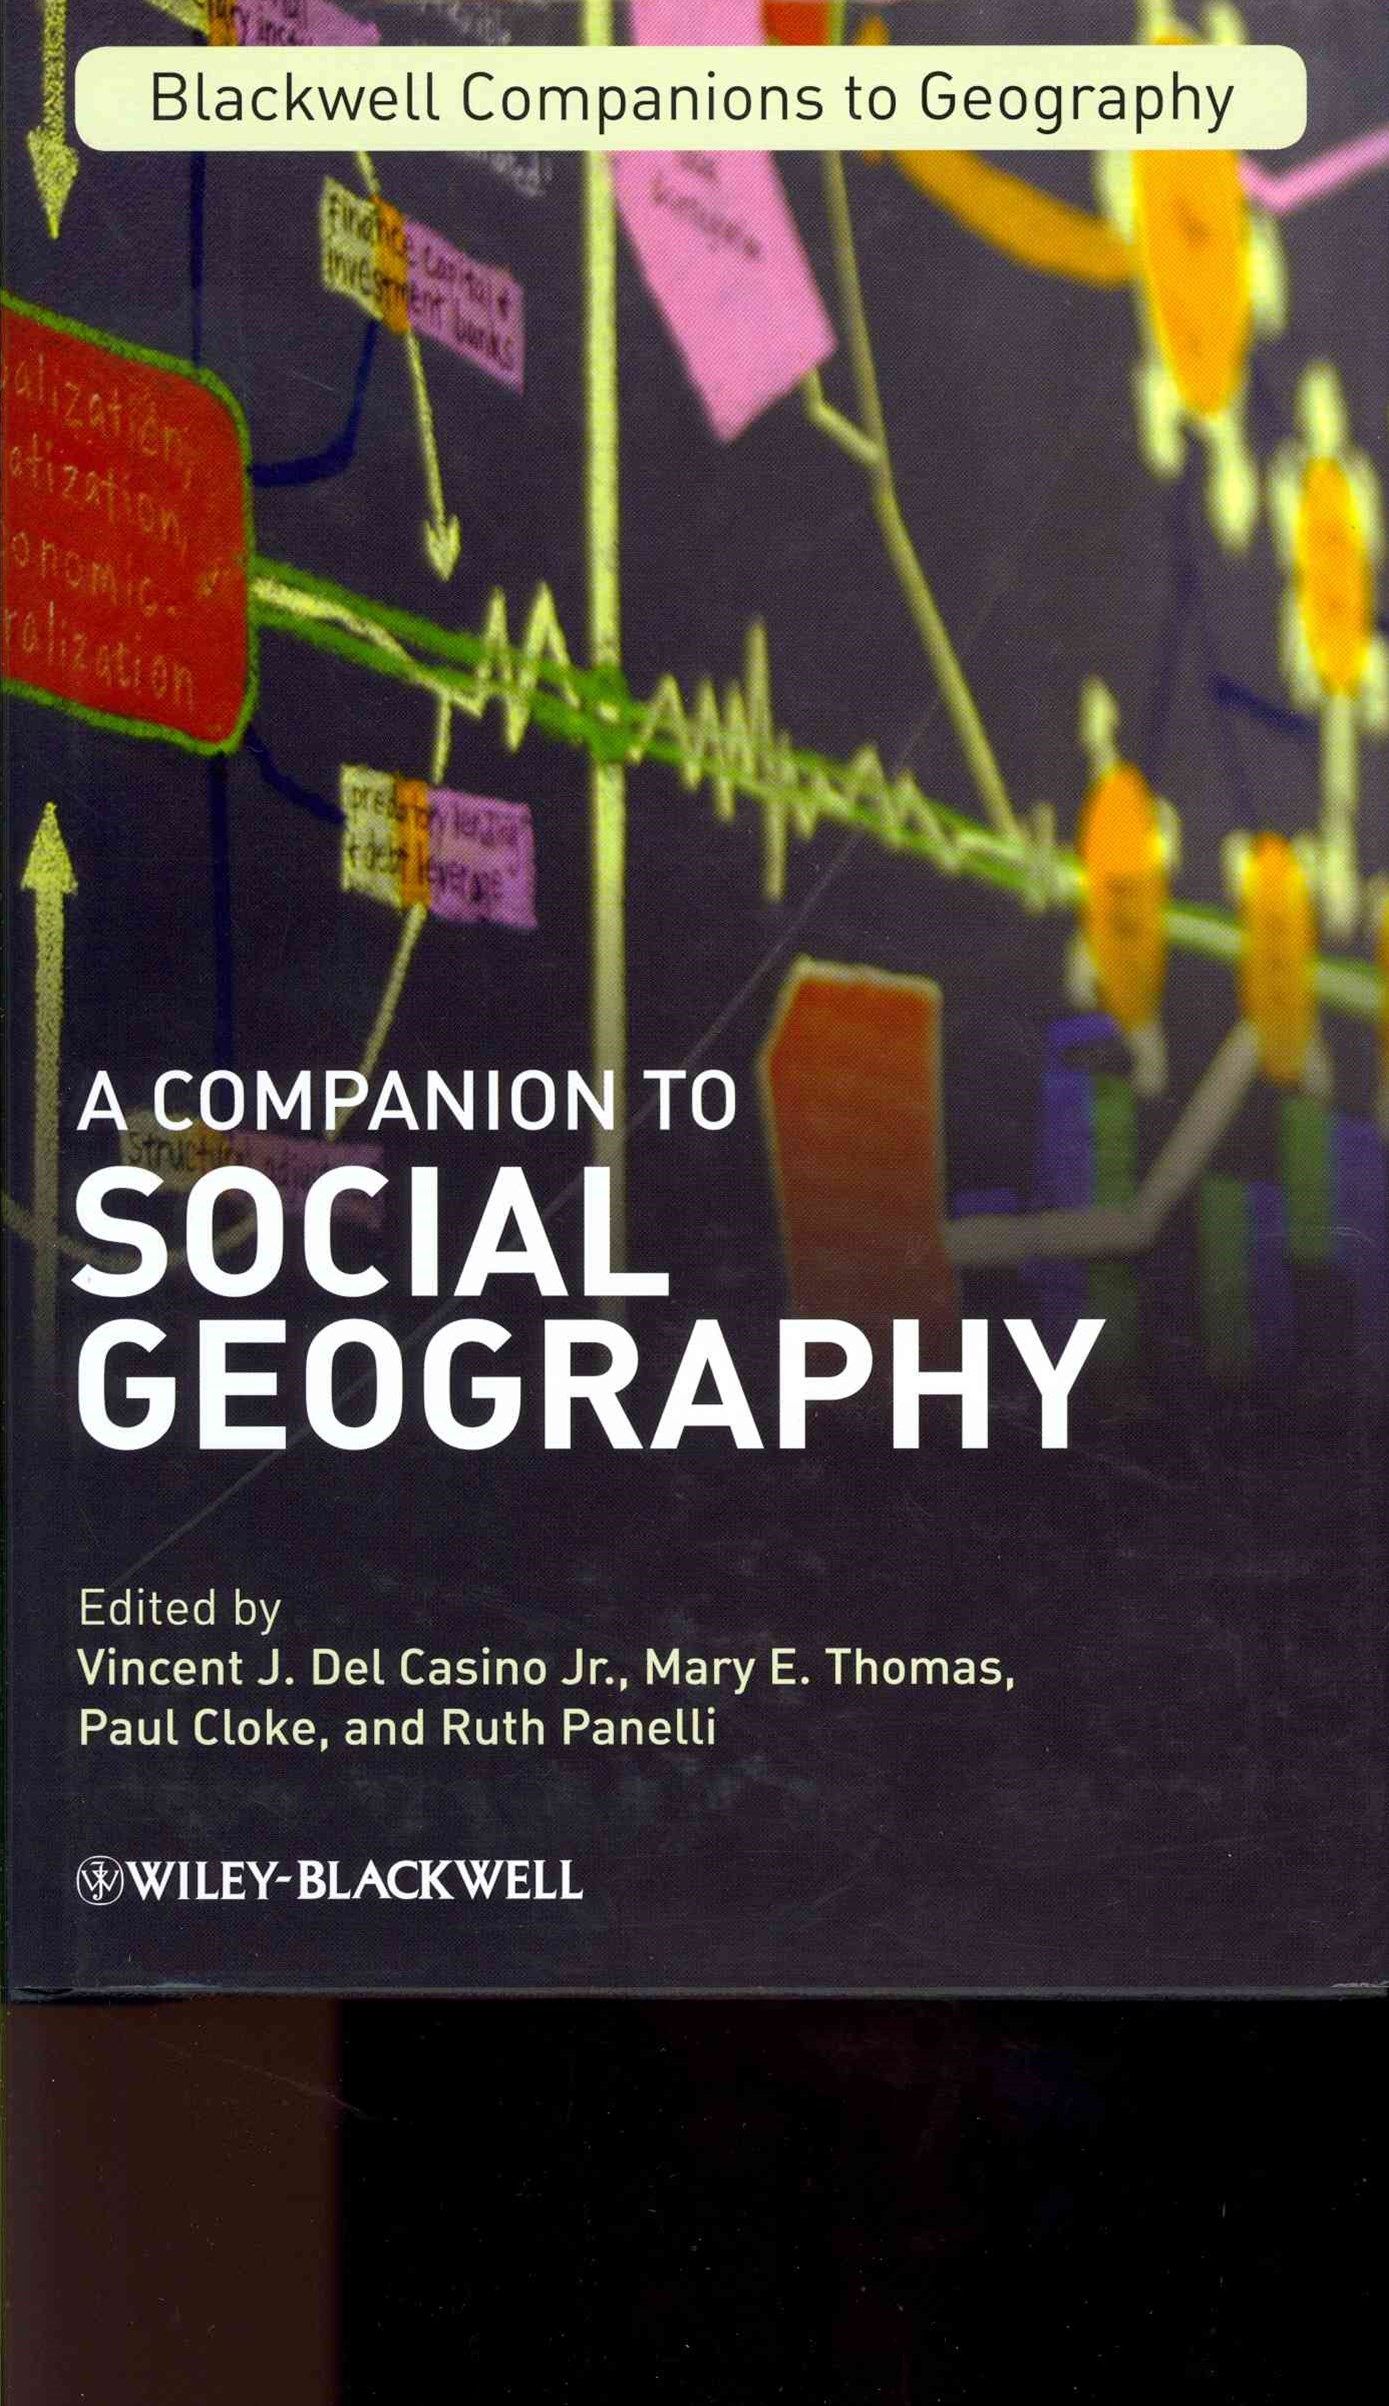 A Companion to Social Geography